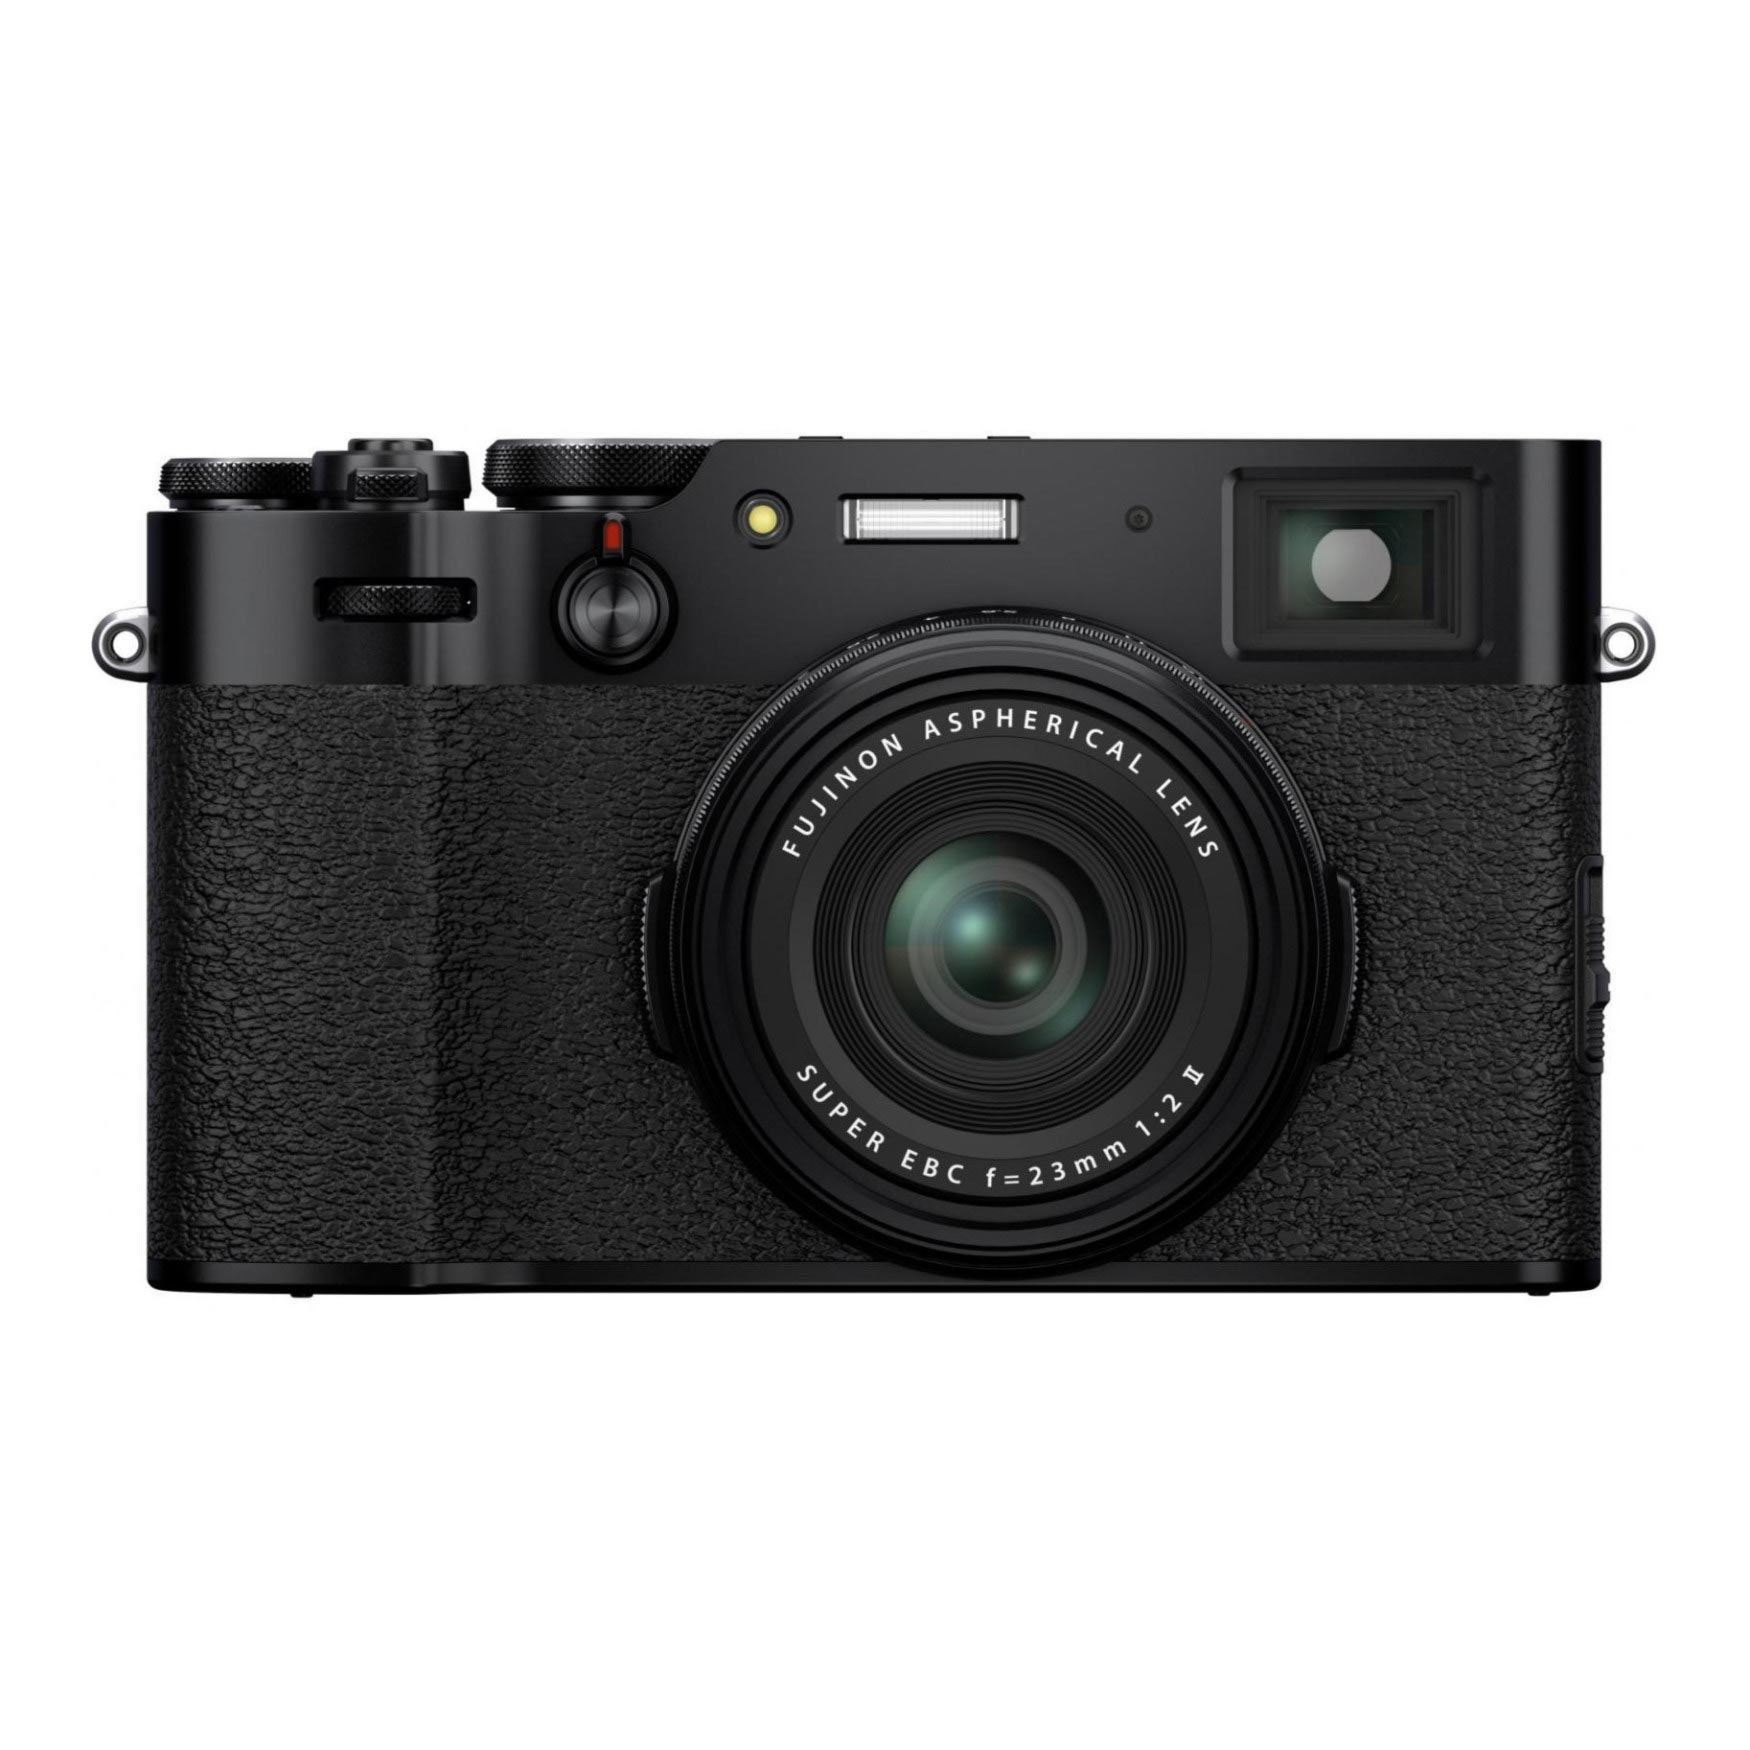 Image of Used Fujifilm X100V Digital Camera - Black